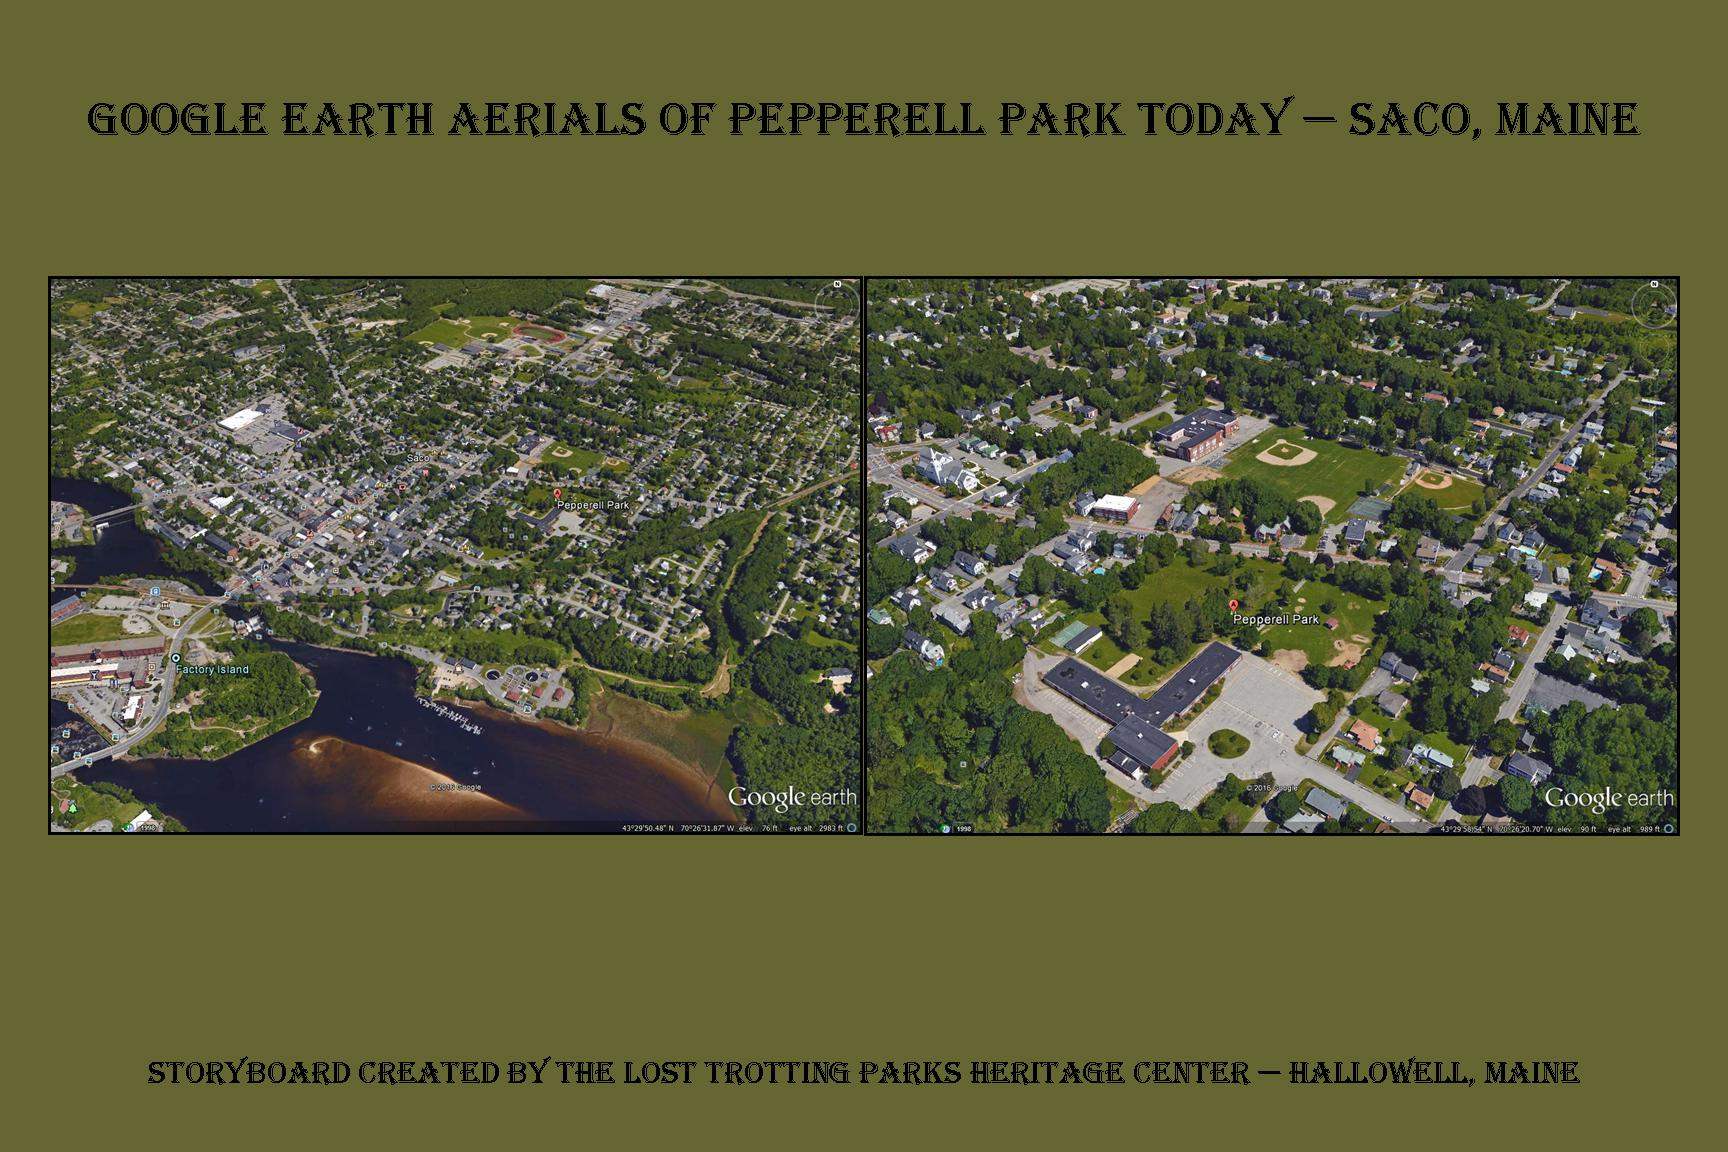 Pepperell Park in Saco — In 1872 in use as a Trotting Park